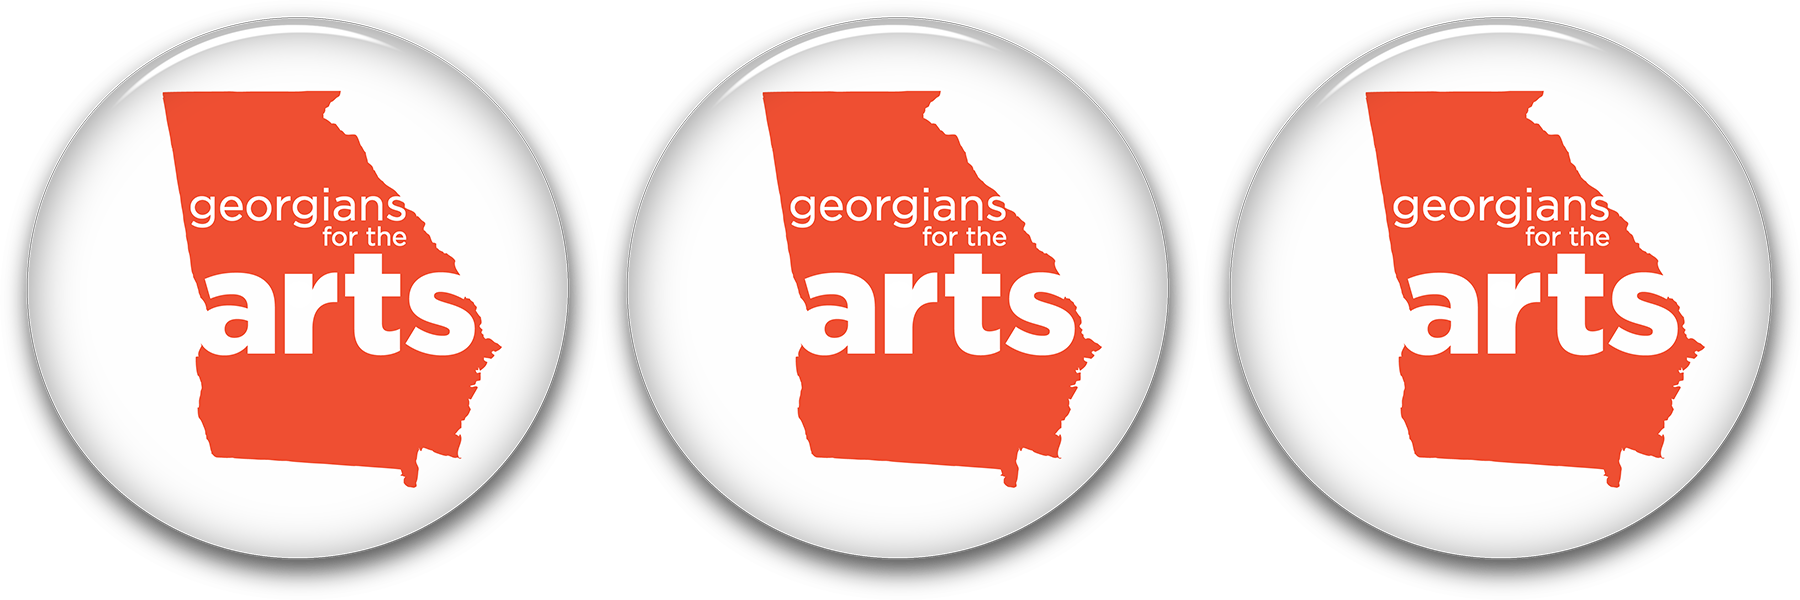 Georgians for the Arts arts advocacy